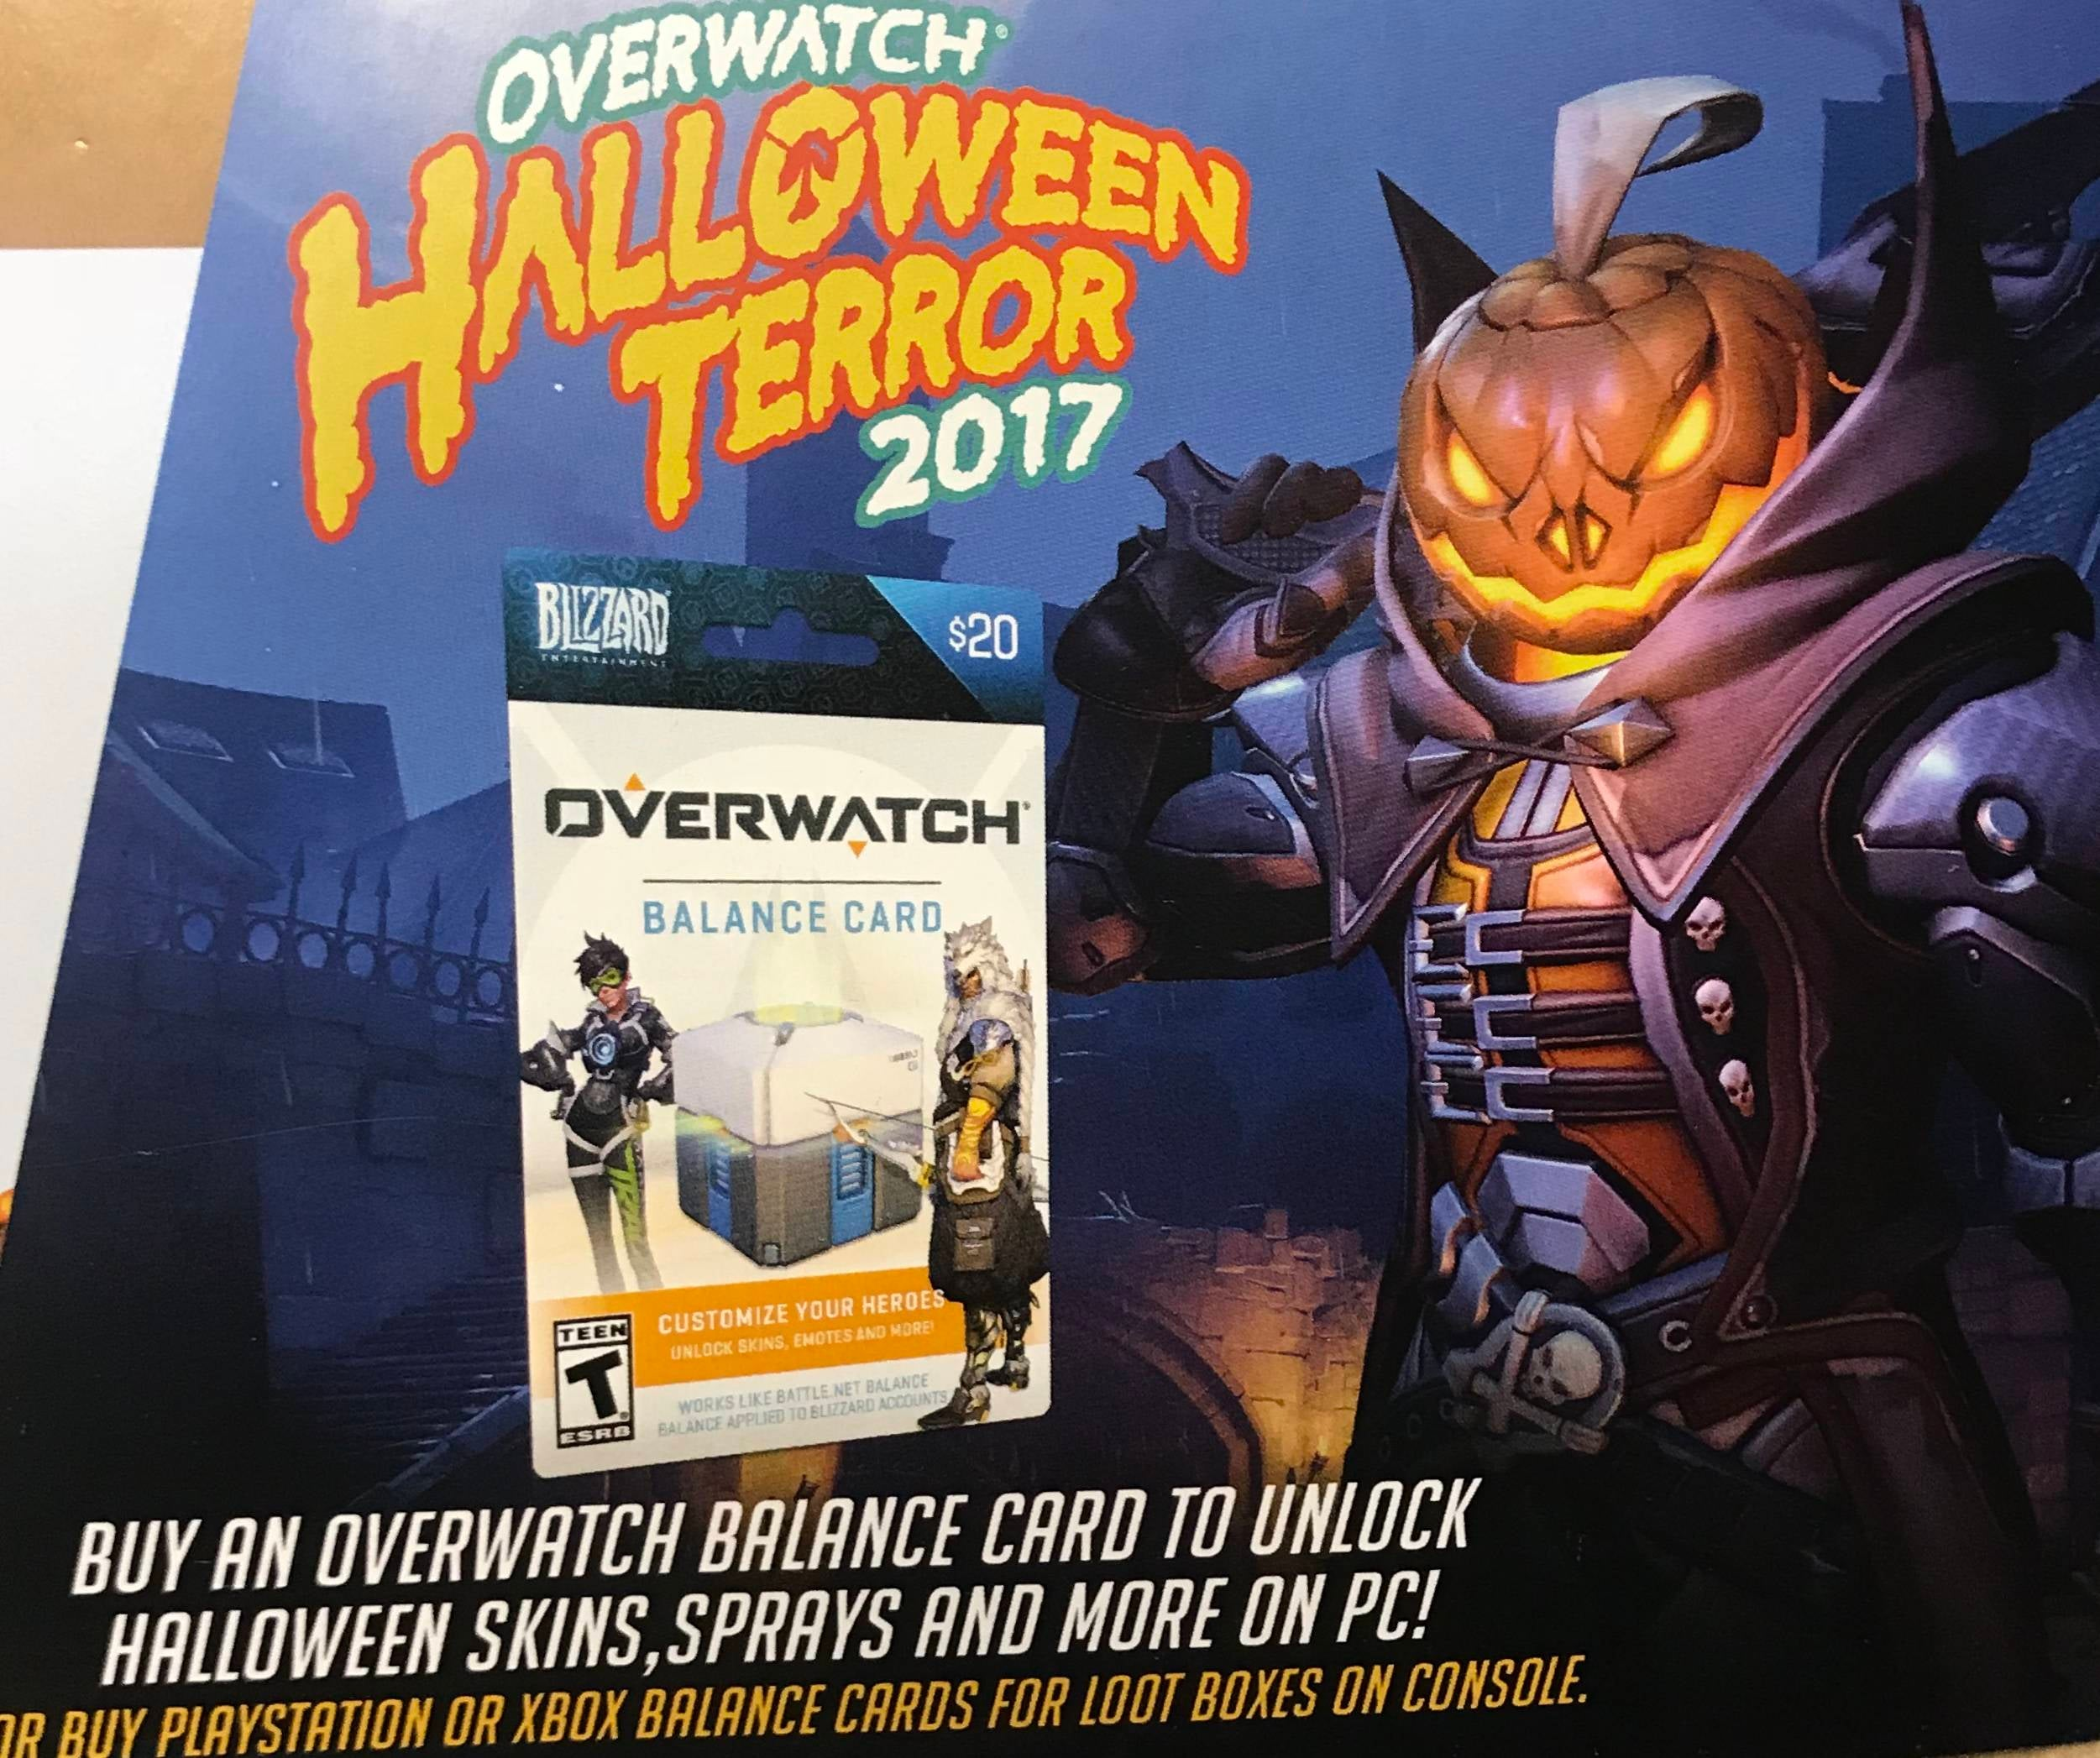 Free Comic Book Day Overwatch: Overwatch Halloween Event Details Leaked